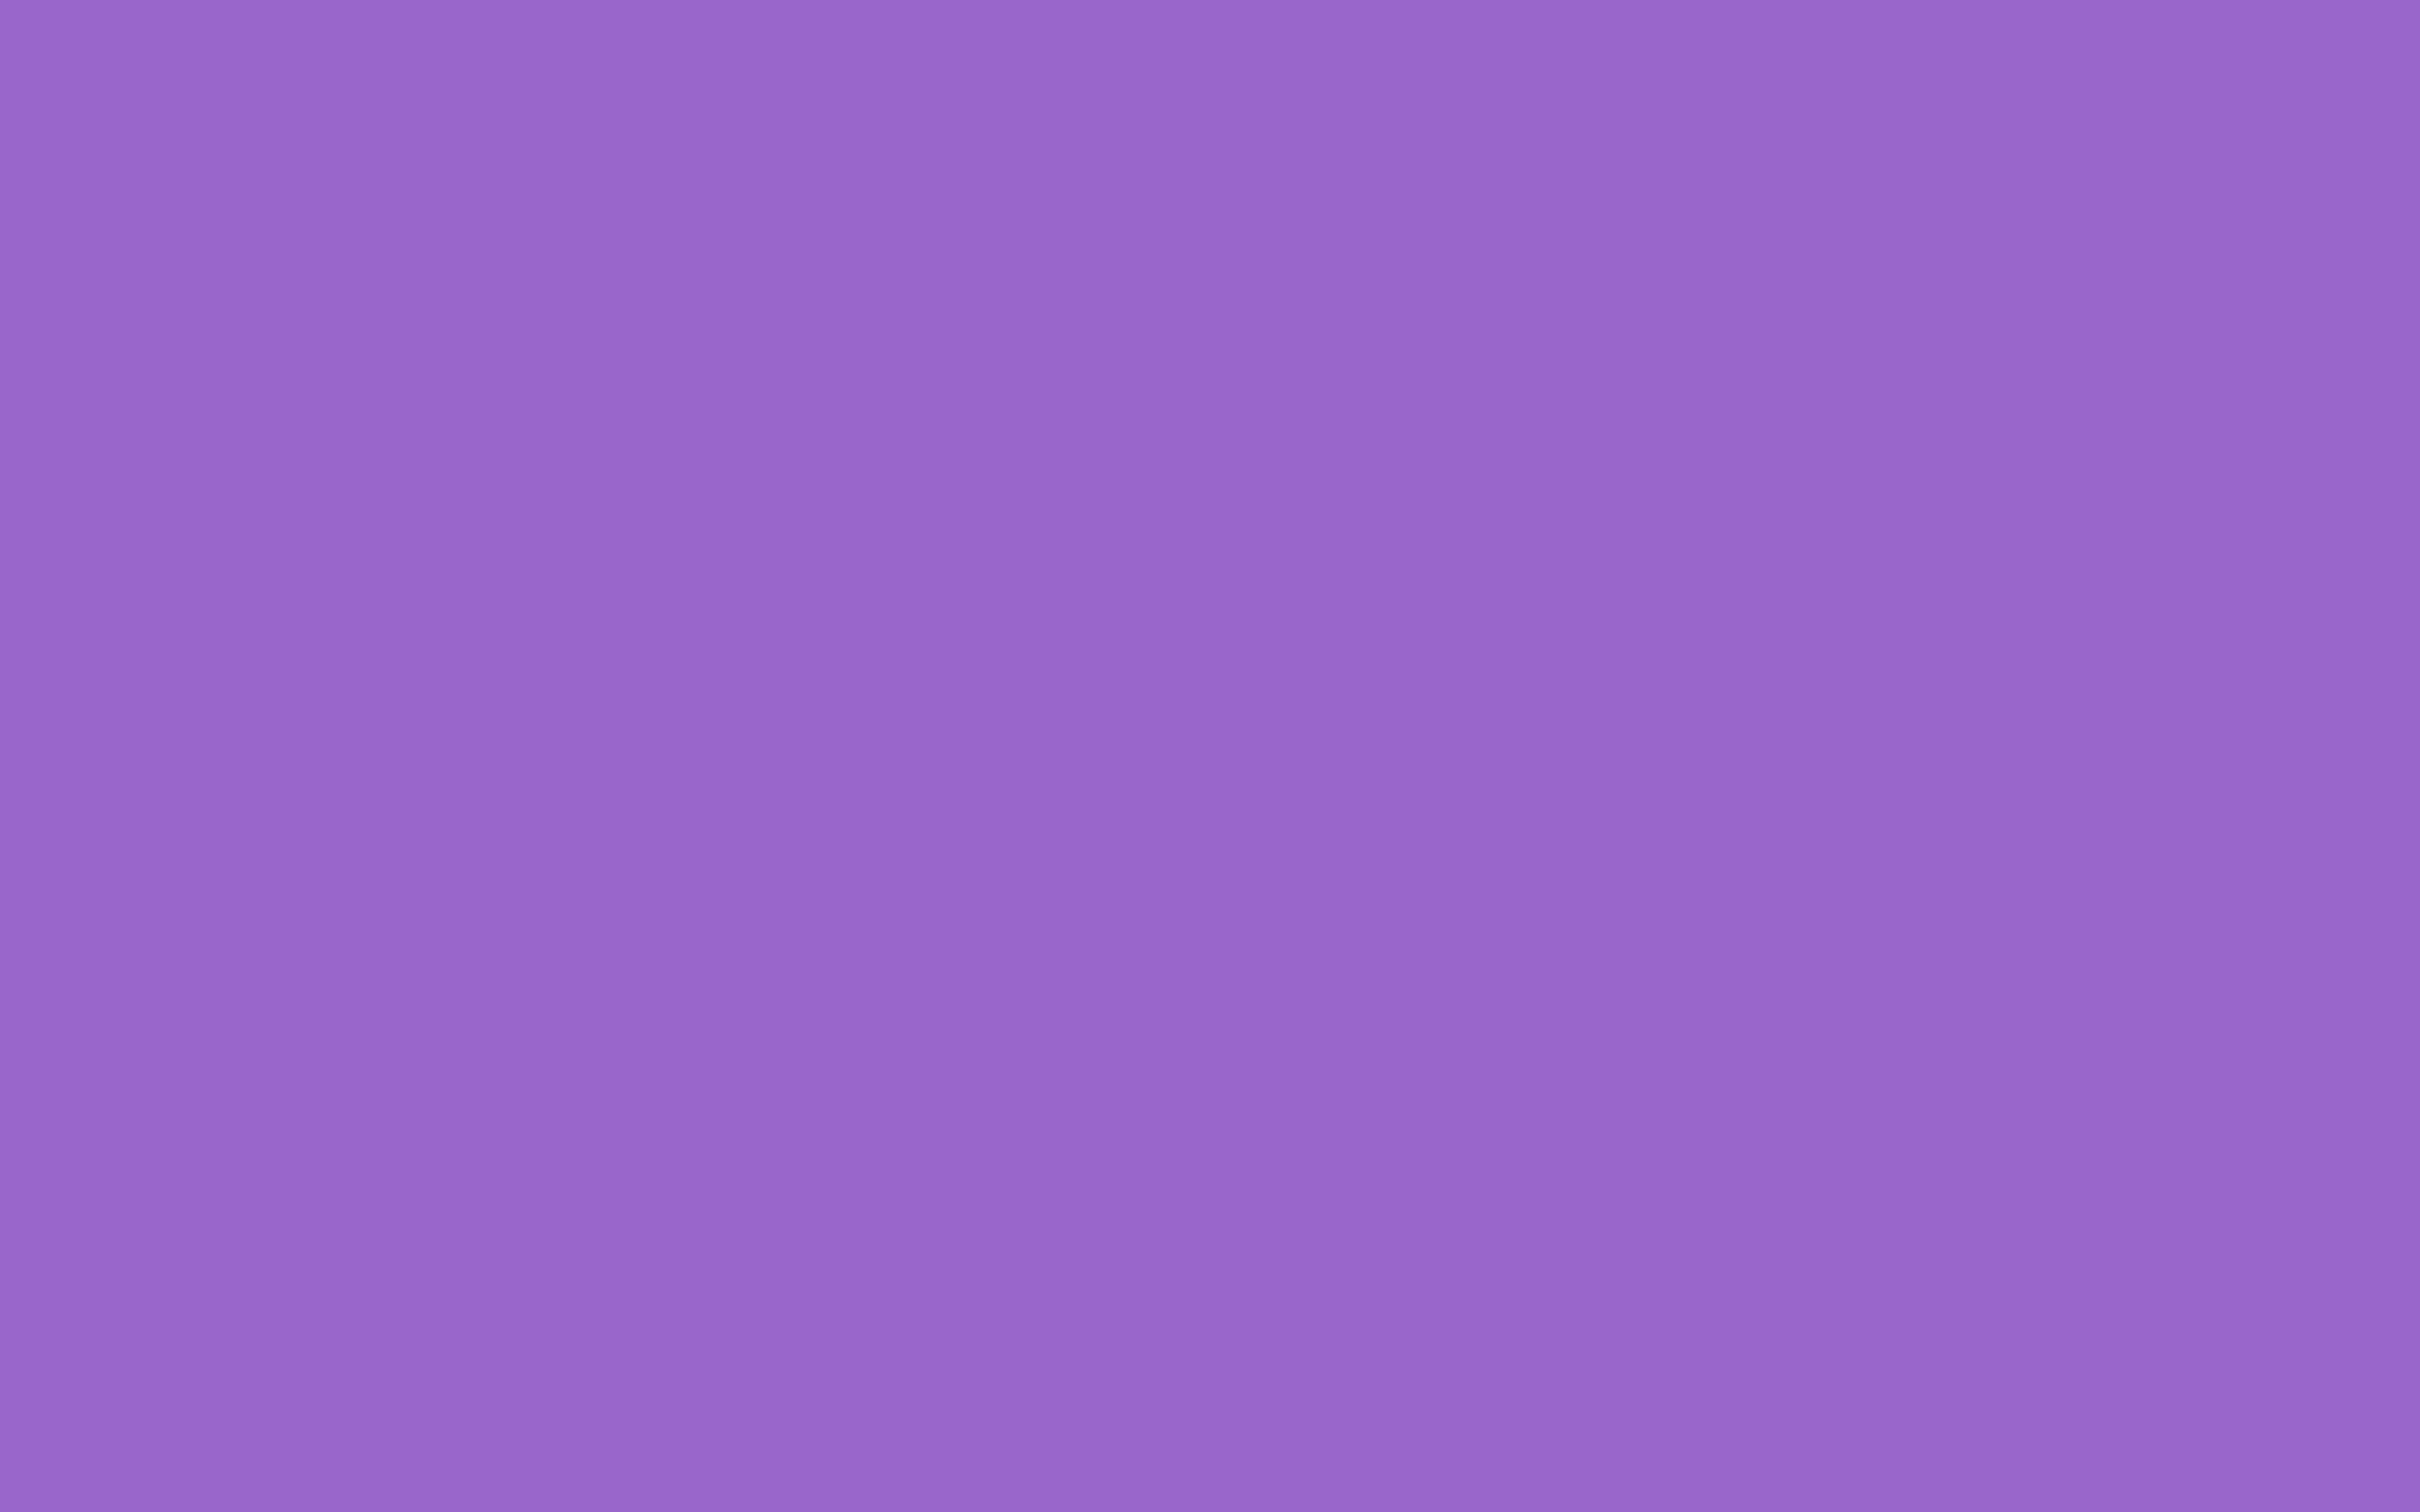 2560x1600 Amethyst Solid Color Background